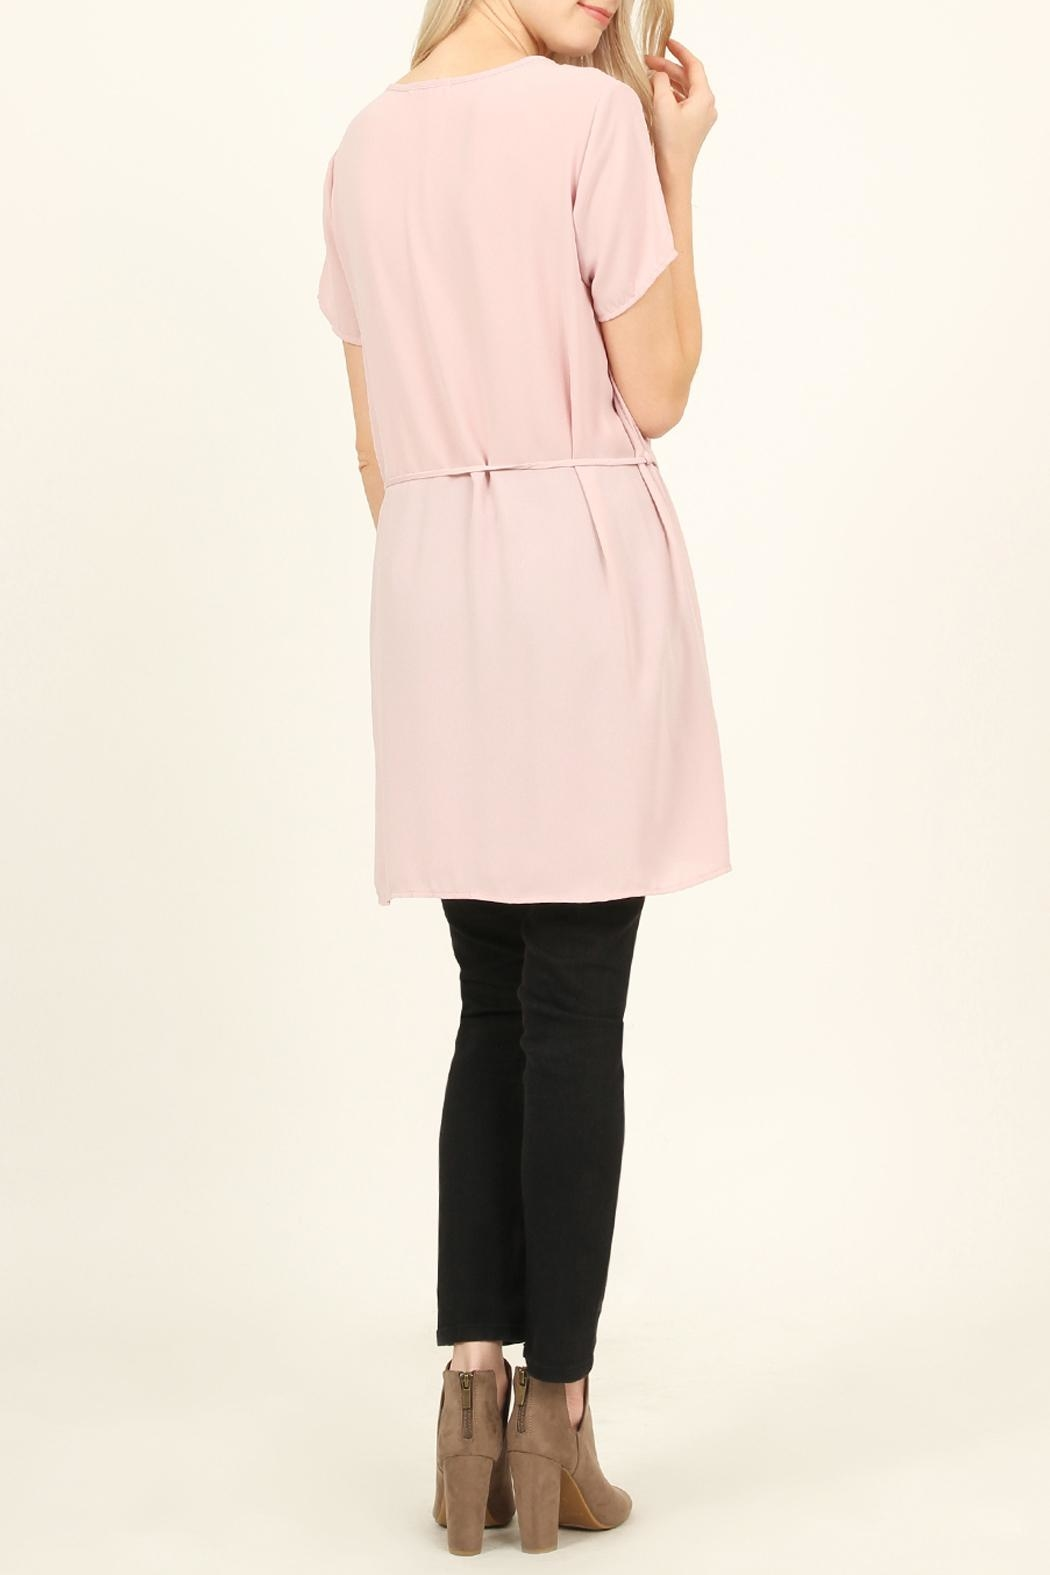 Riah Fashion Self-Tie Waist-Pocket Tunic-Blouse - Front Full Image